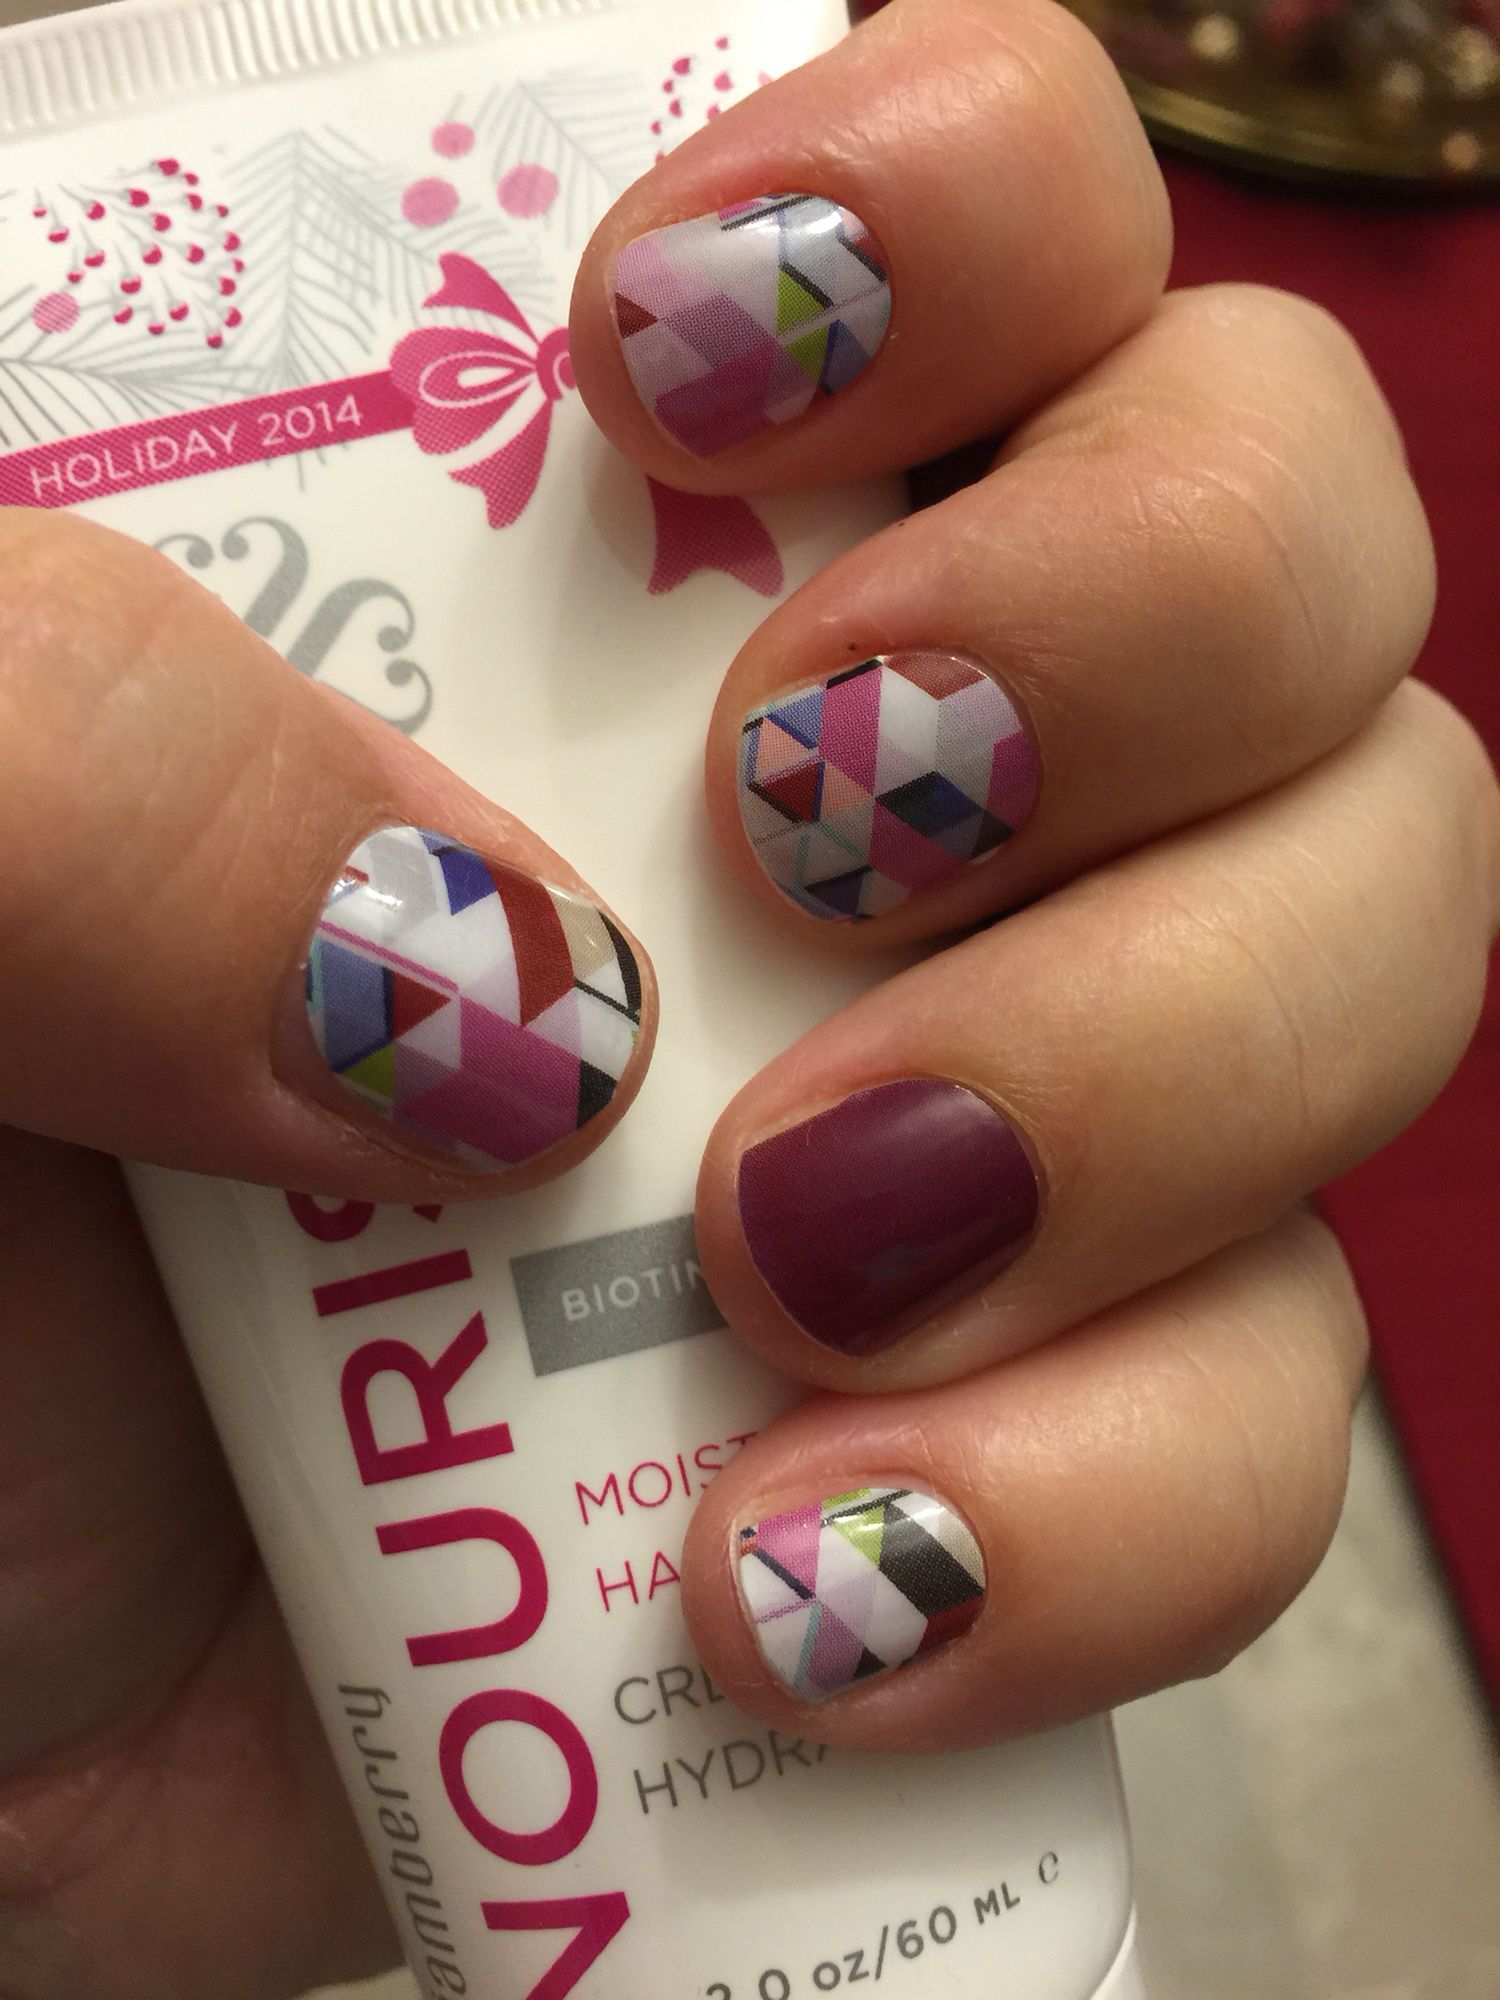 Non-toxic, heat activated nail wraps that last for 2 weeks on nails ...